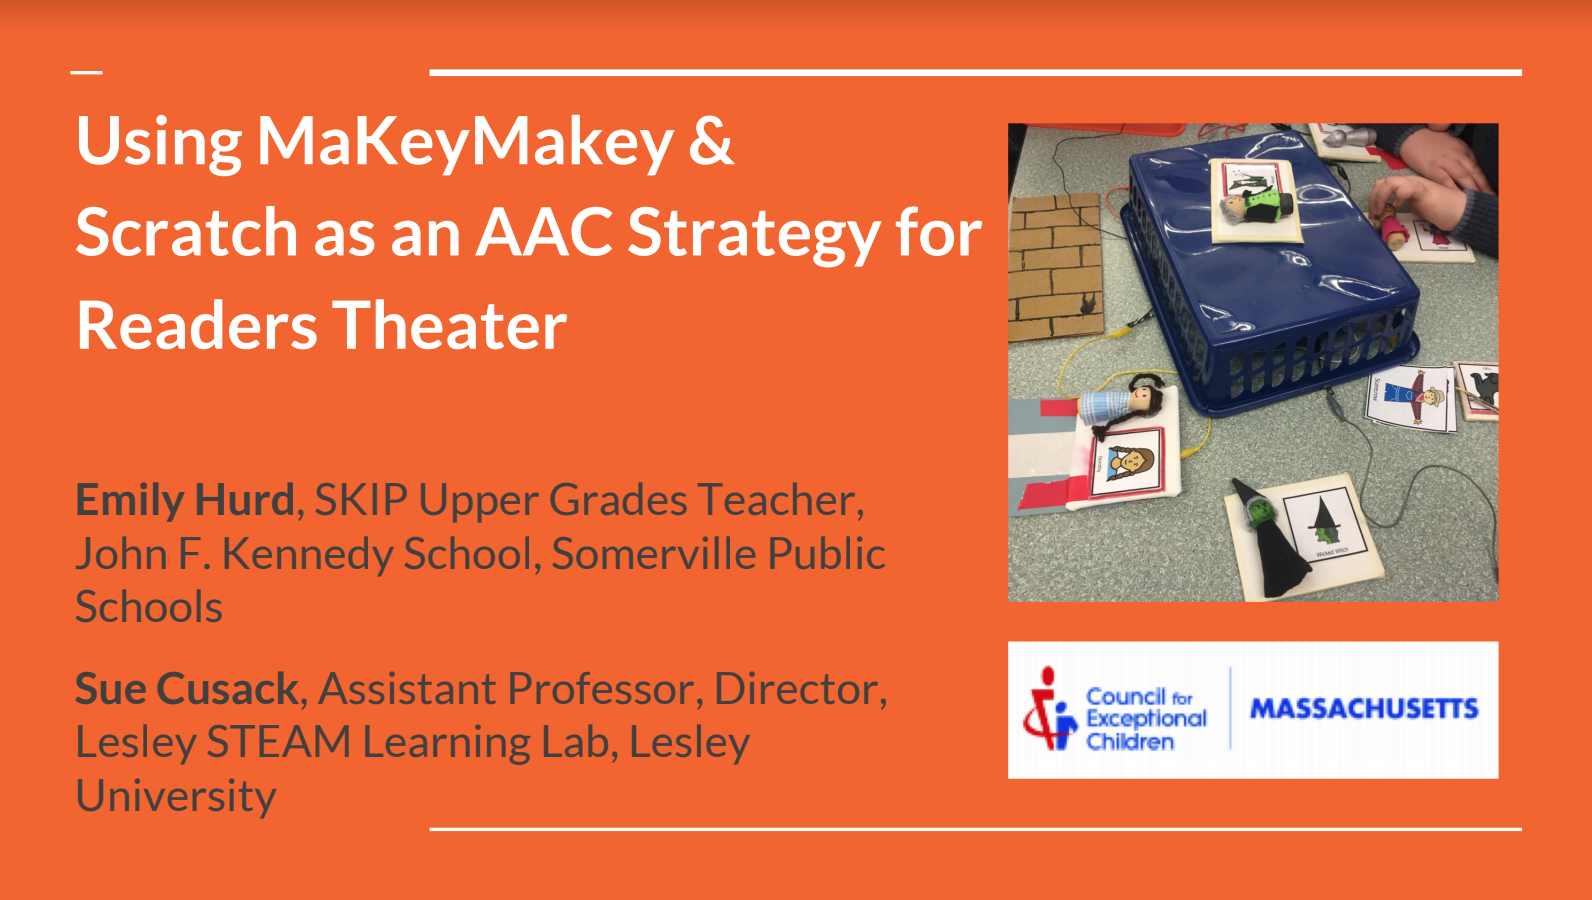 Using MakeyMakey & Scratch as an AAC Strategy for Readers Theater Banner